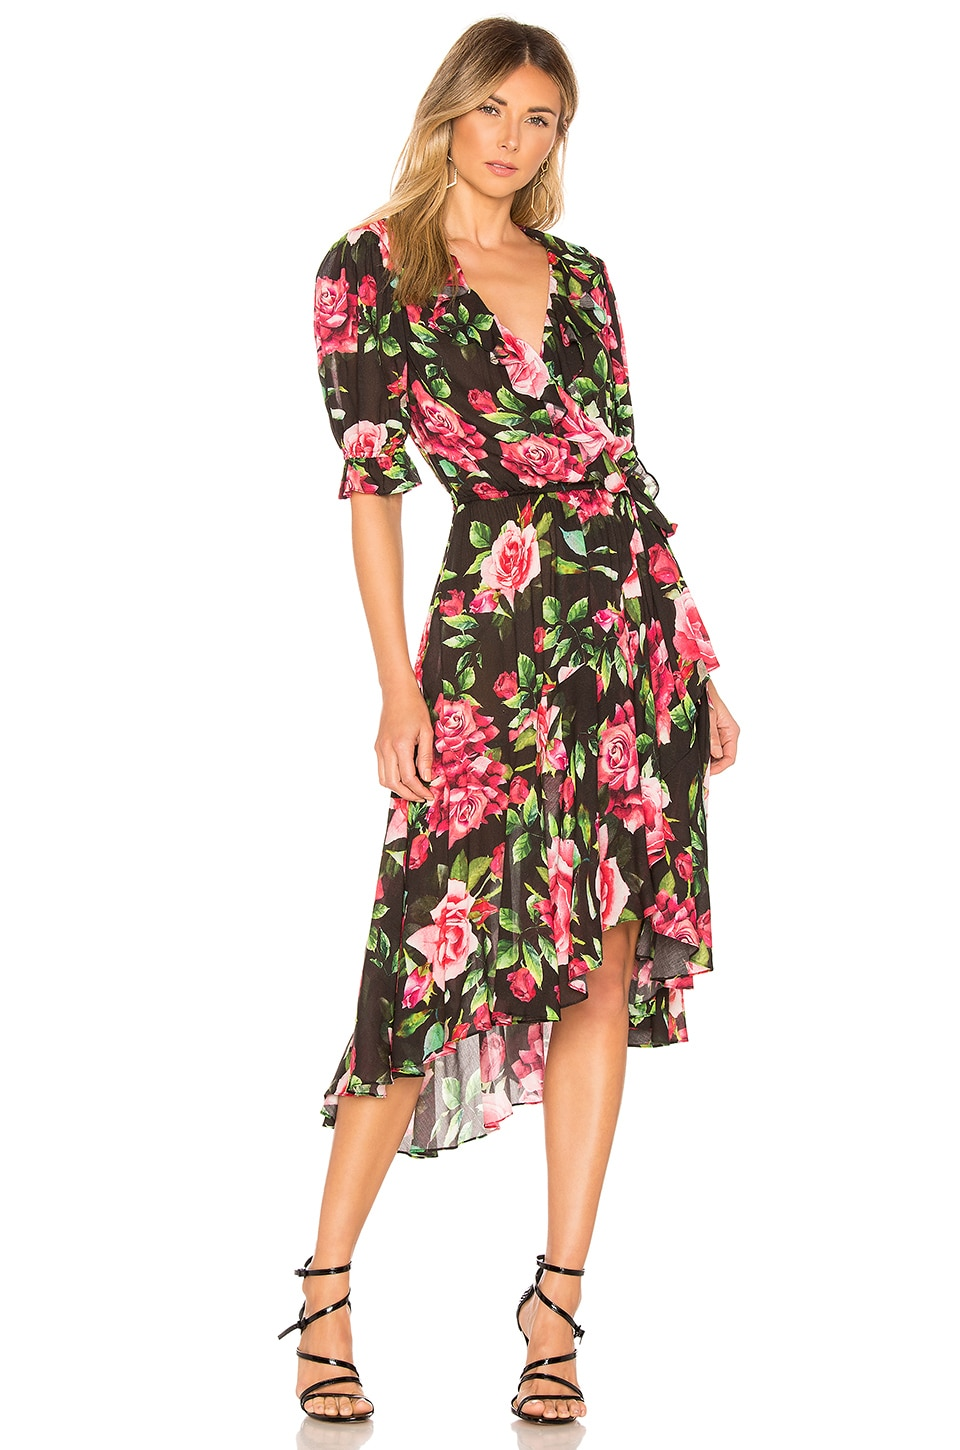 ICONS Objects of Devotion The Cha Cha Wrap Dress in Black Rose